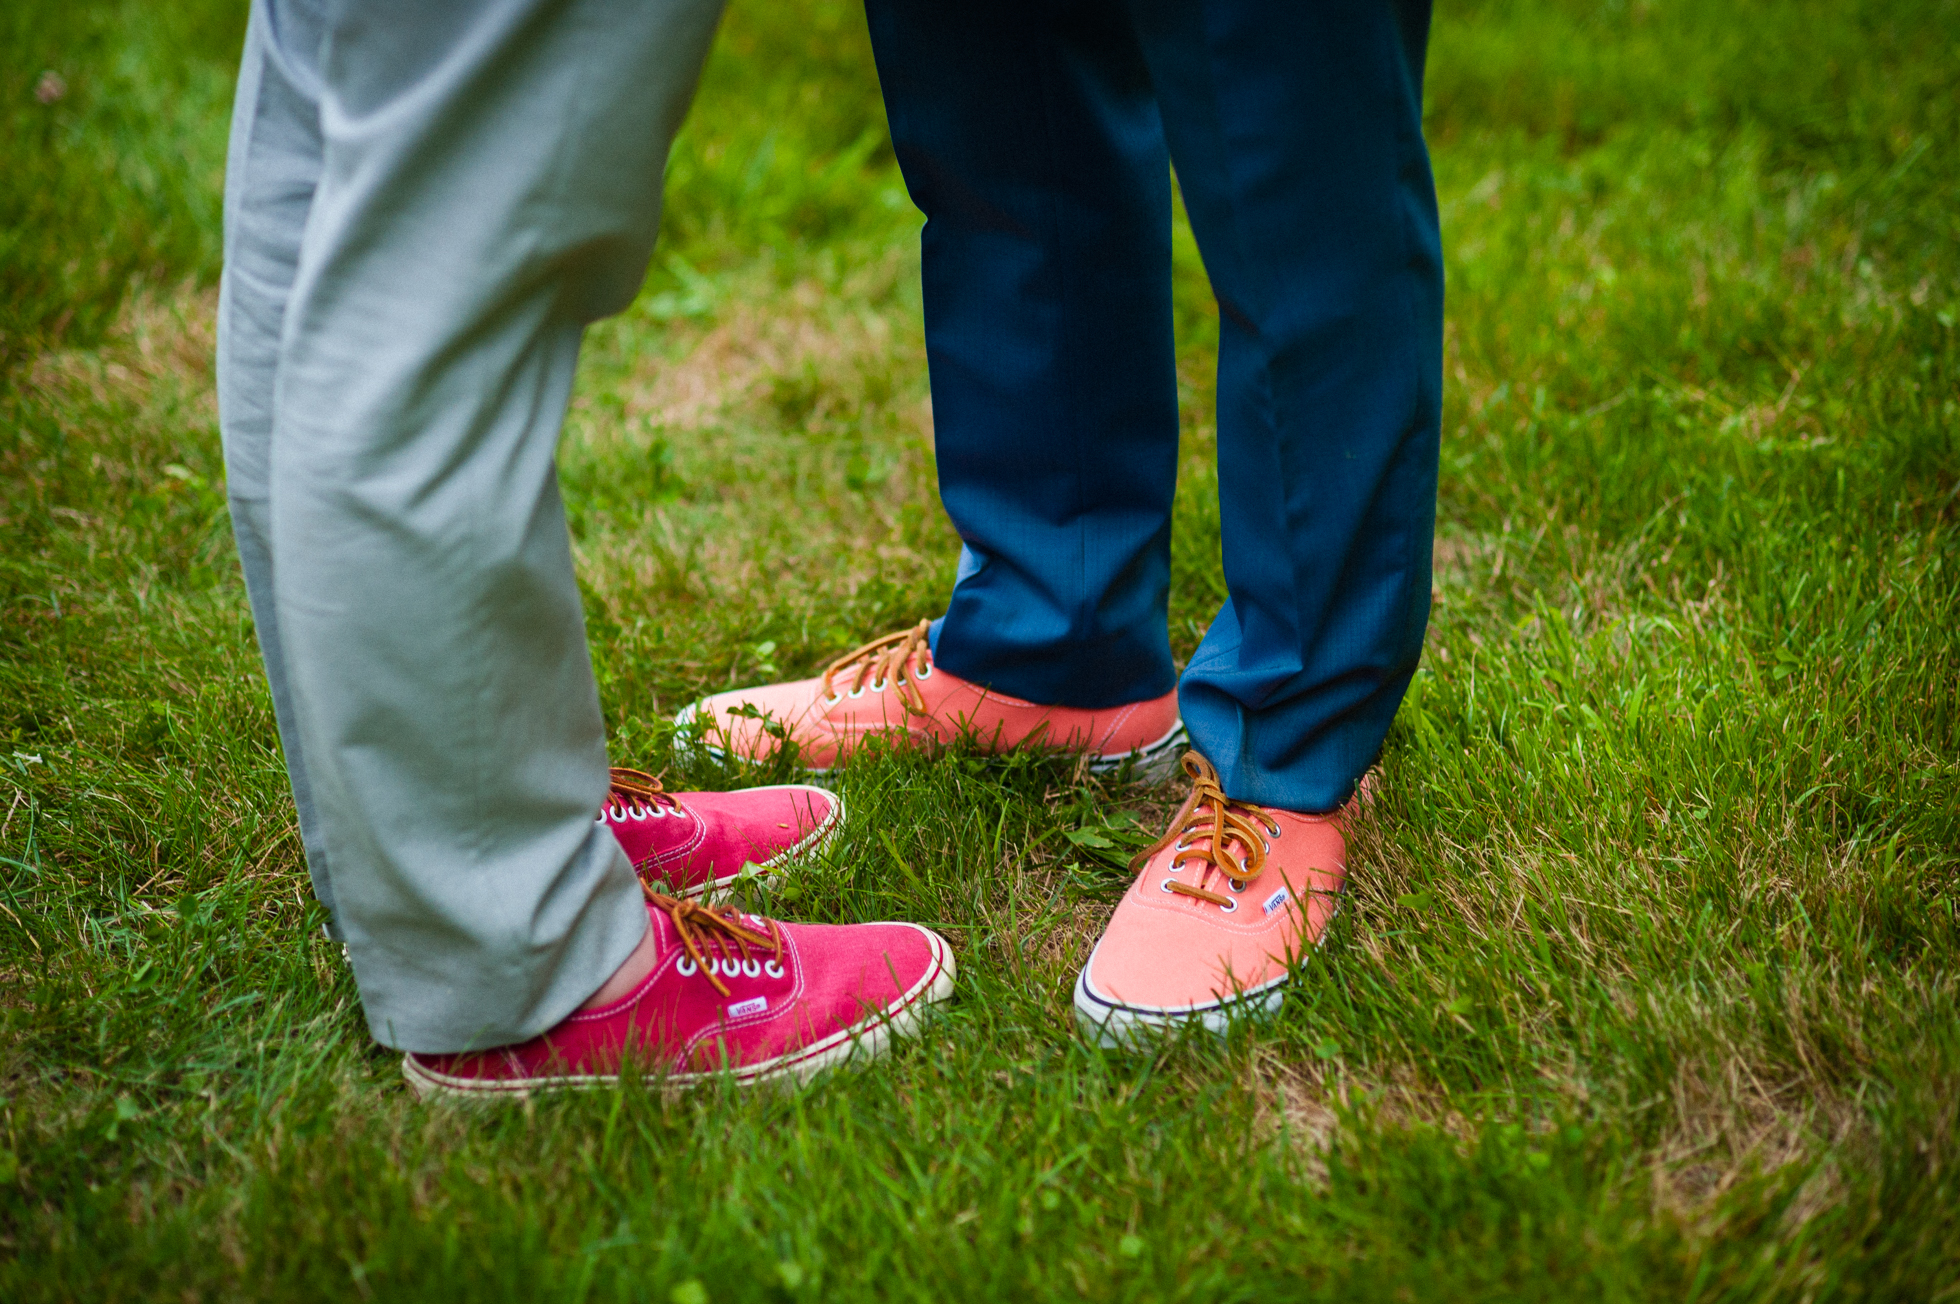 grooms colorful converse shoes